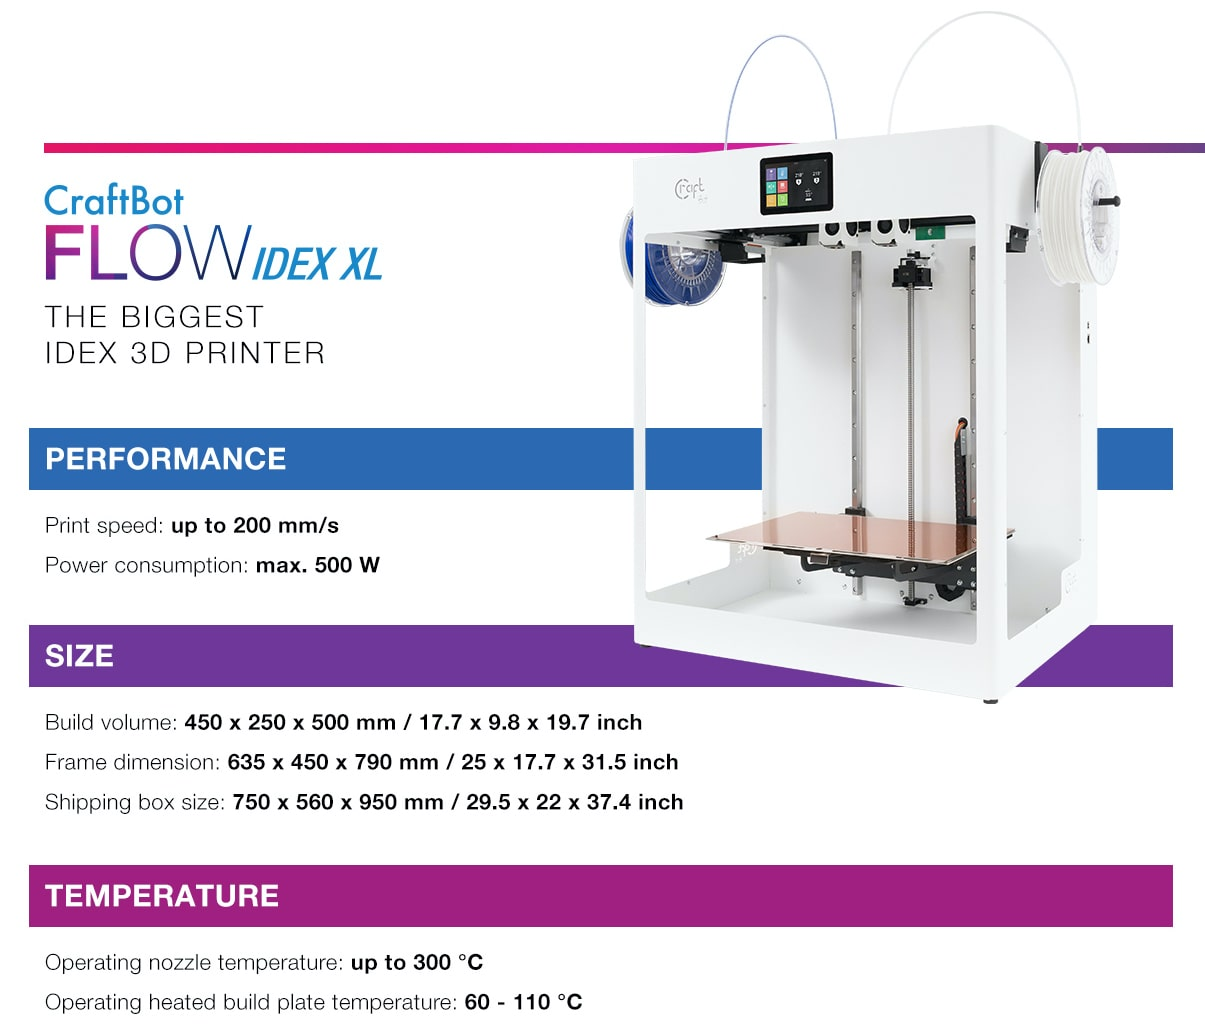 CraftBot FLOW IDEX XL Dual Extruder 3D Printer